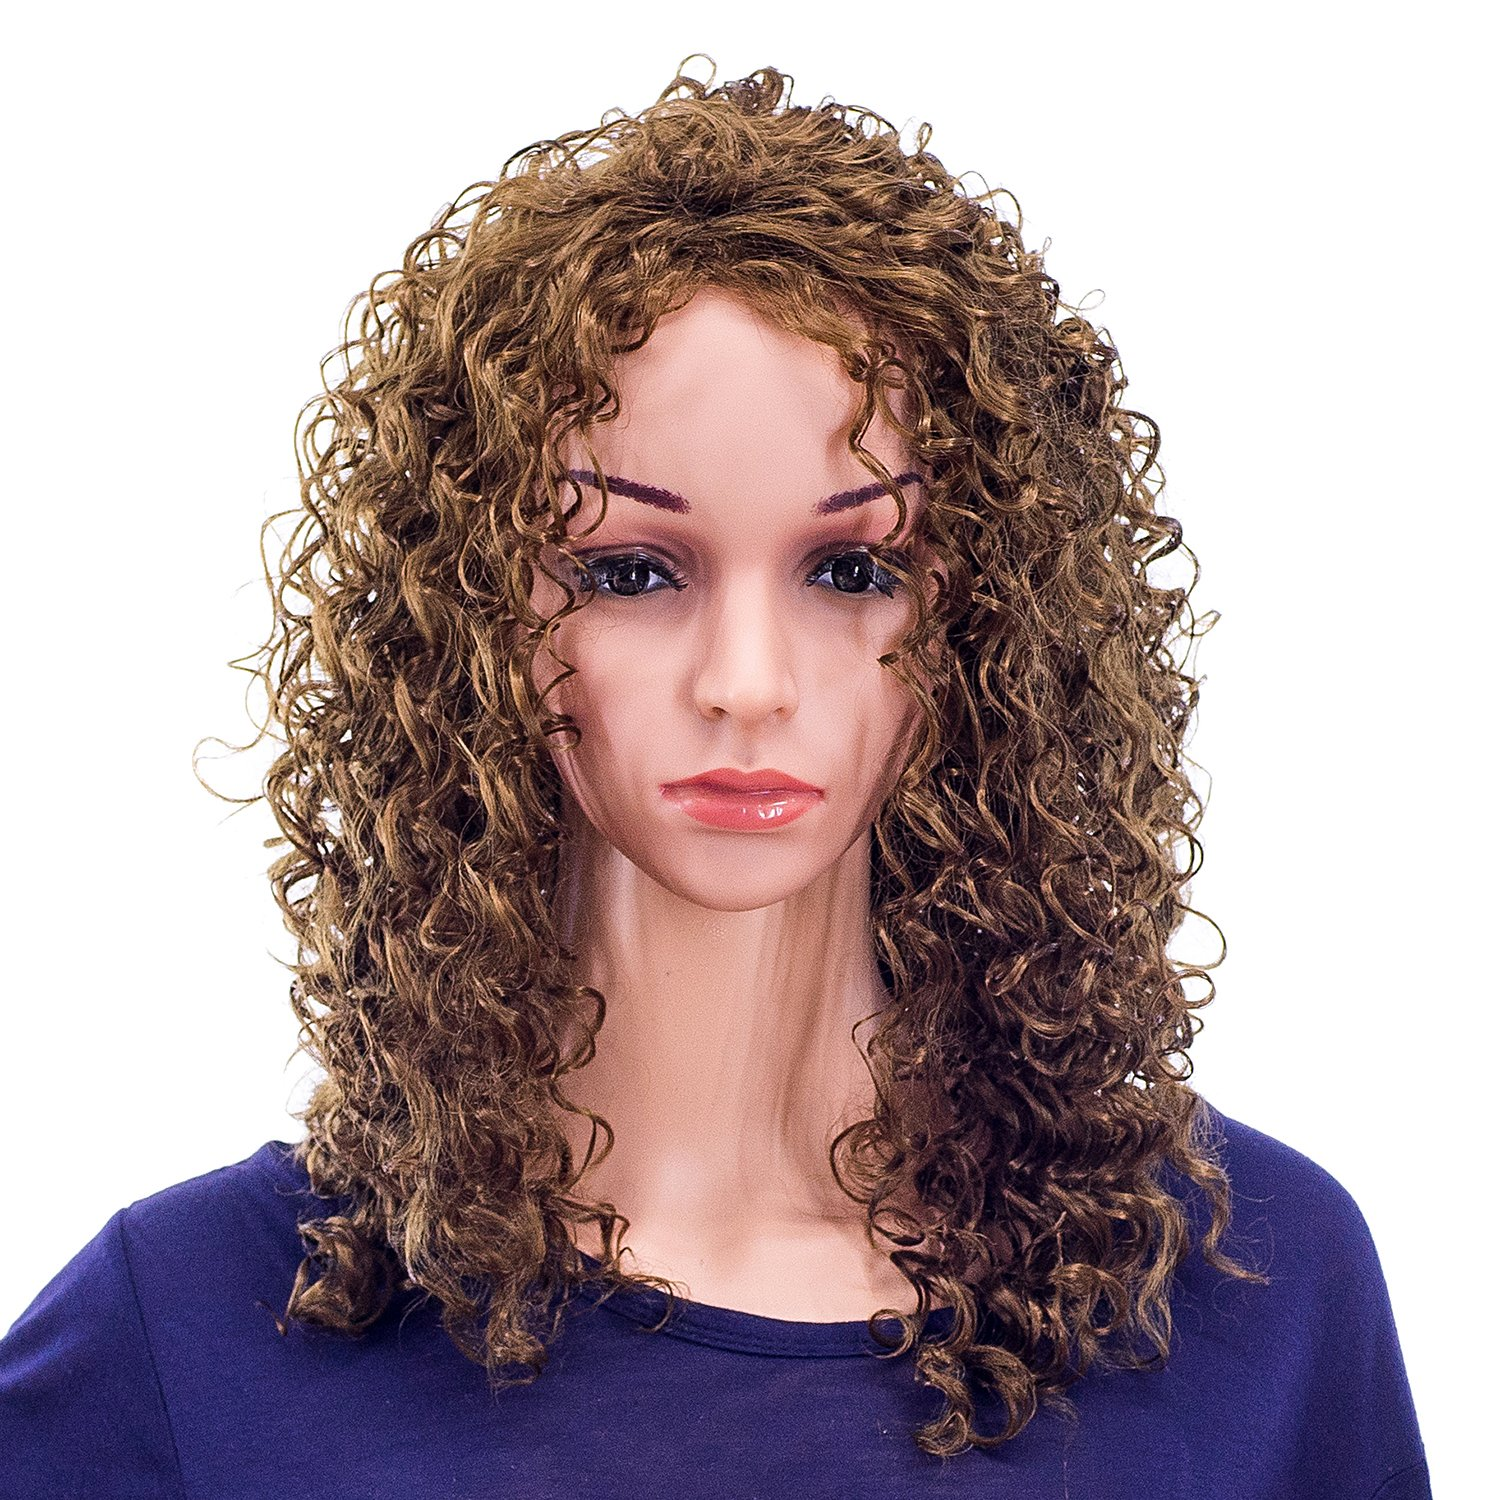 SWACC 20-Inch Long Big Bouffant Curly Wigs for Women Synthetic Heat Resistant Fiber Hair Pieces with Wig Cap (Light Dirty Brown-12#) by SWACC (Image #3)